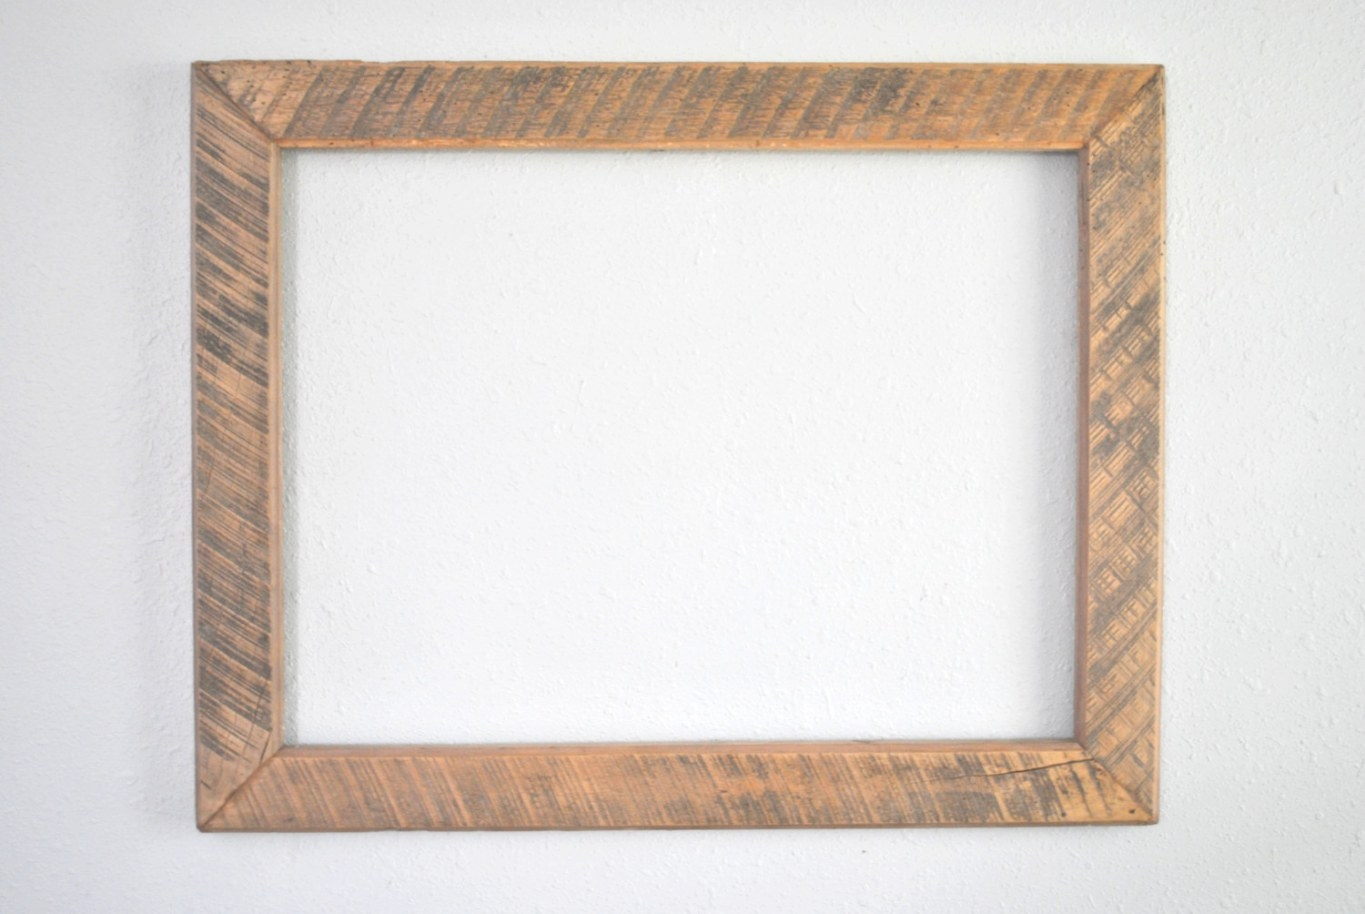 18 X 24 Rough Sawed Wood Frame Late 1800'S Ranch Barn in 18 X 24 Frame